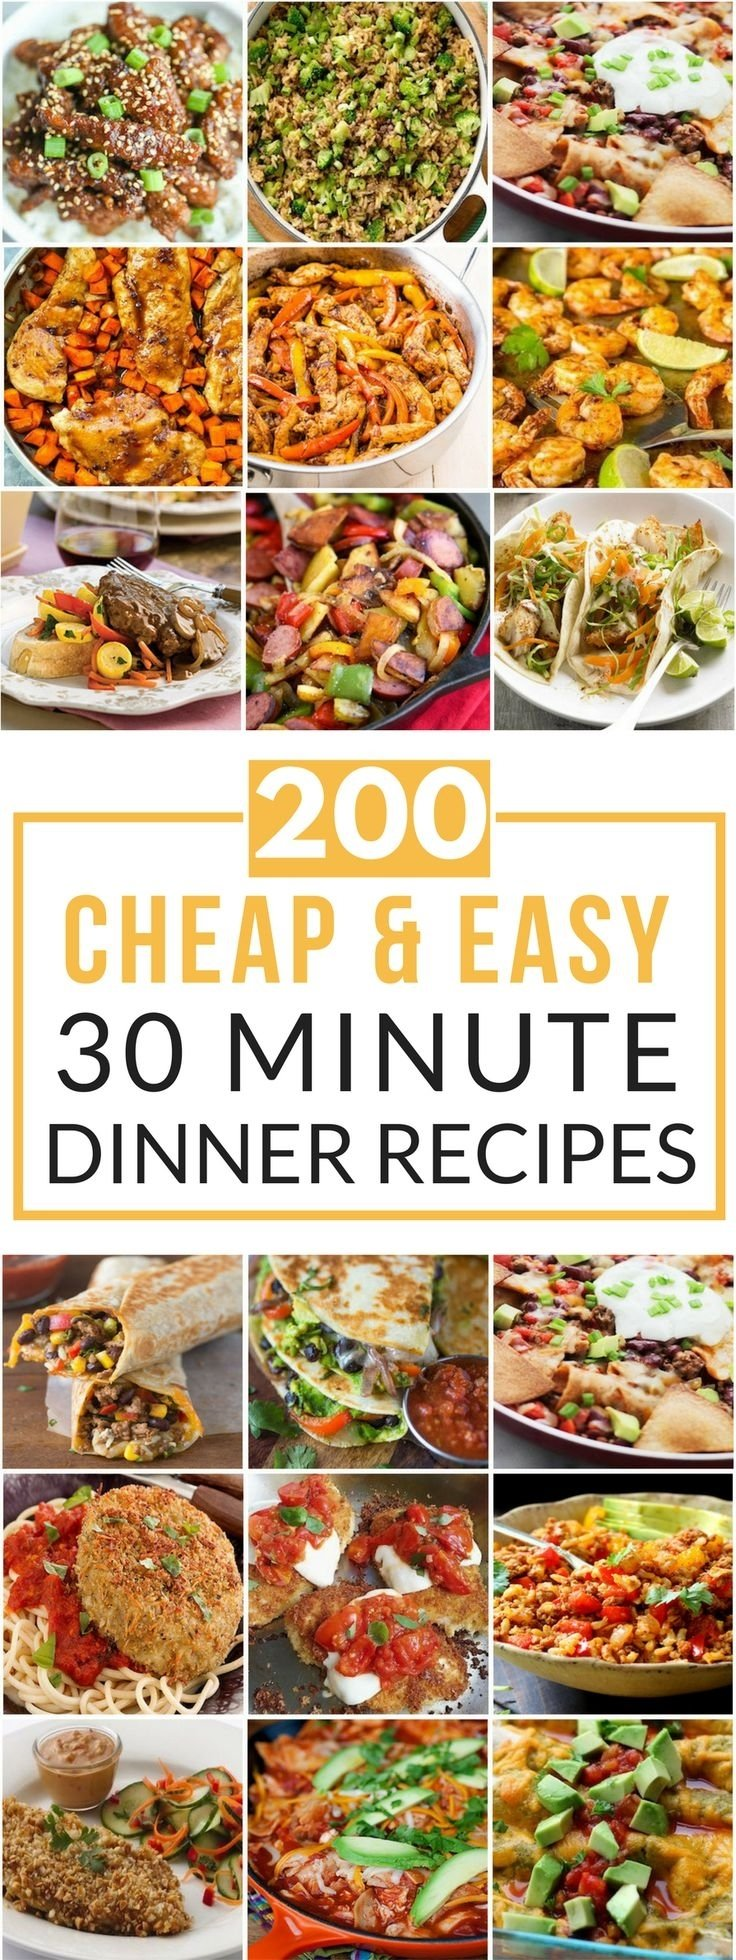 10 Nice Cheap Dinner Ideas For 2 886 best budget recipes images on pinterest cheap meals cooking 2021